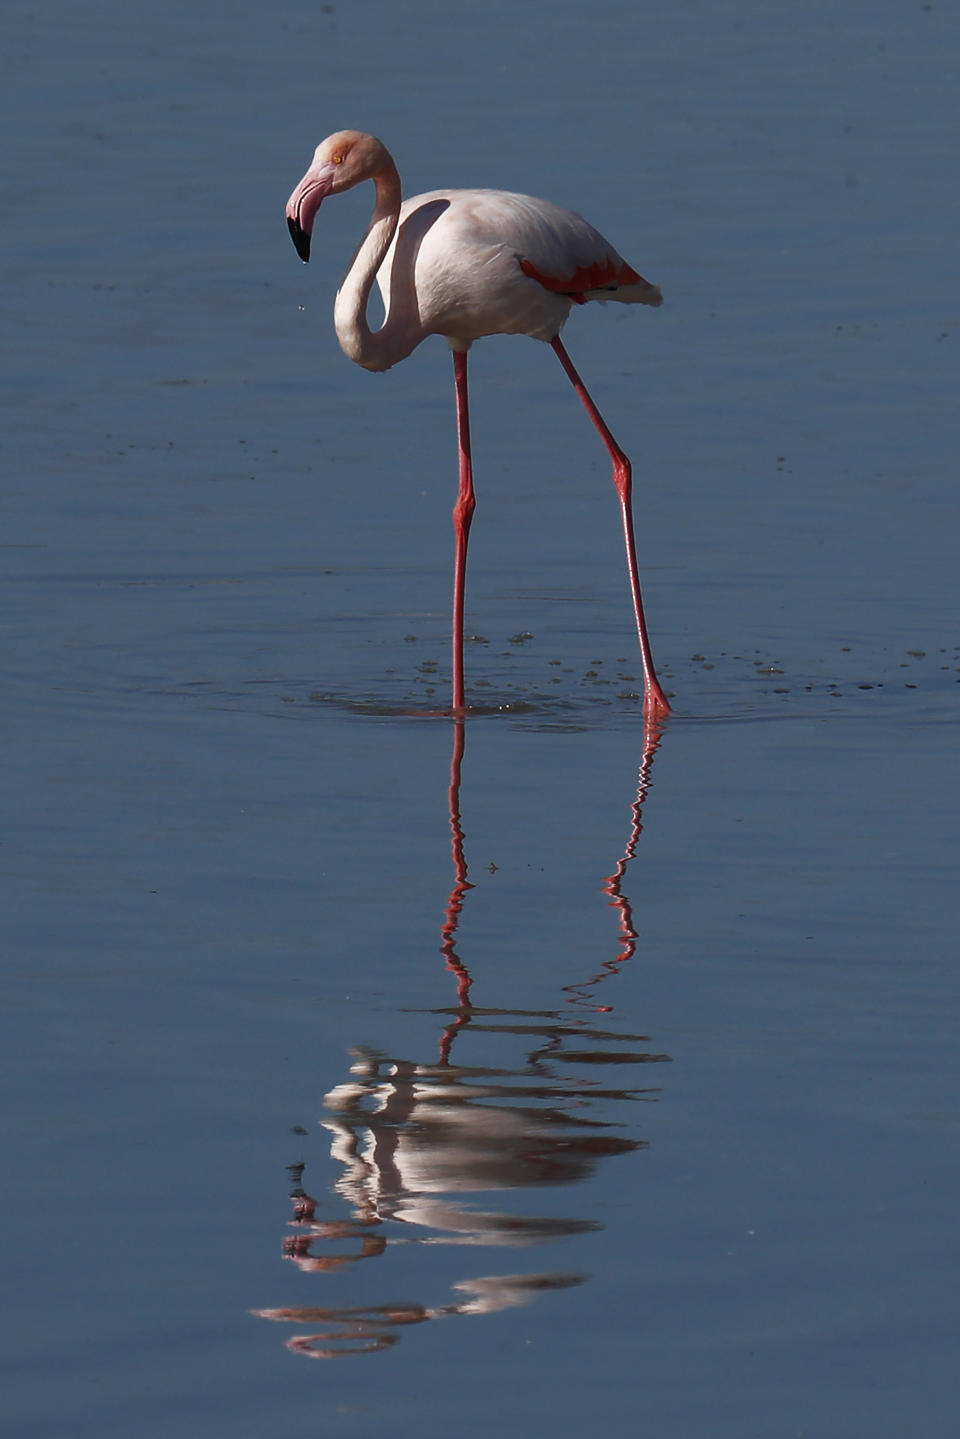 A flamingo stands in a salt lake in the southern coastal city of Larnaca, in the eastern Mediterranean island of Cyprus, Sunday, Jan. 31, 2021. Conservationists in Cyprus are urging authorities to expand a hunting ban throughout a coastal salt lake network amid concerns that migrating flamingos could potentially swallow lethal quantities of lead shotgun pellets. (AP Photo/Petros Karadjias)